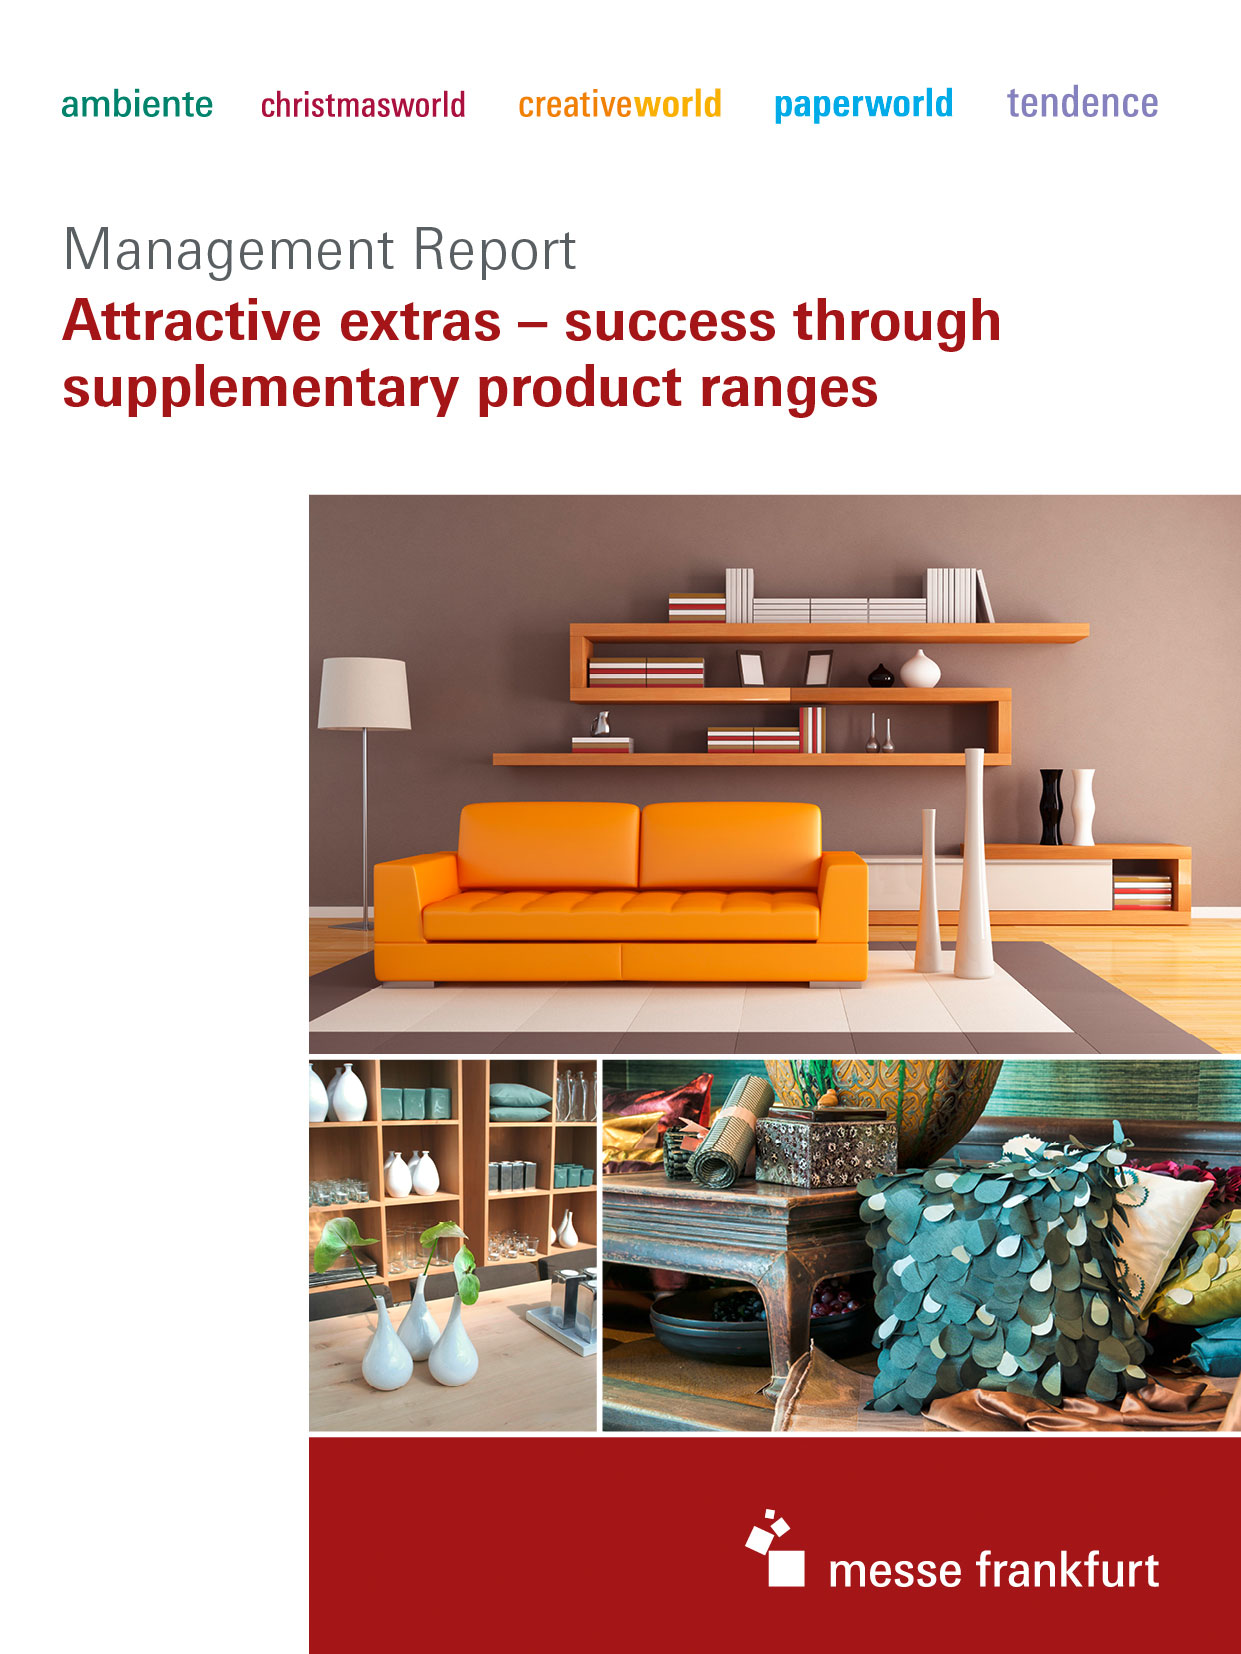 Attractive extras – success through supplementary product ranges